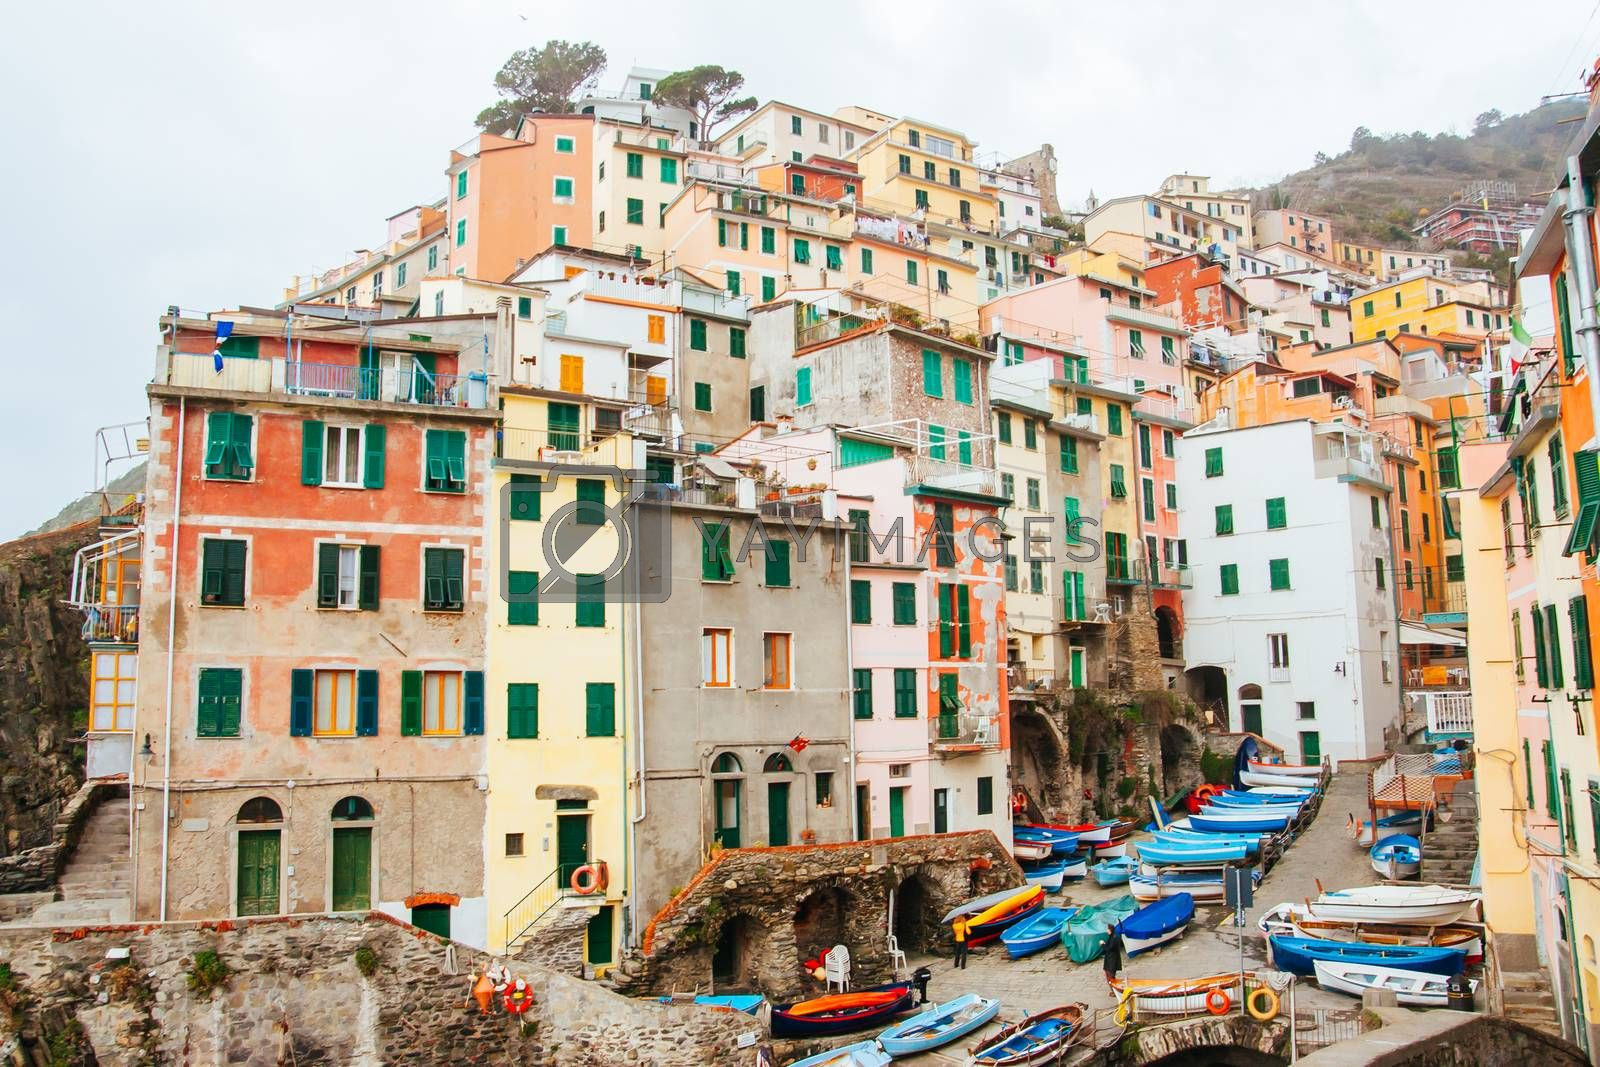 Royalty free image of Riomaggiore Harbour Area in Italy by FiledIMAGE